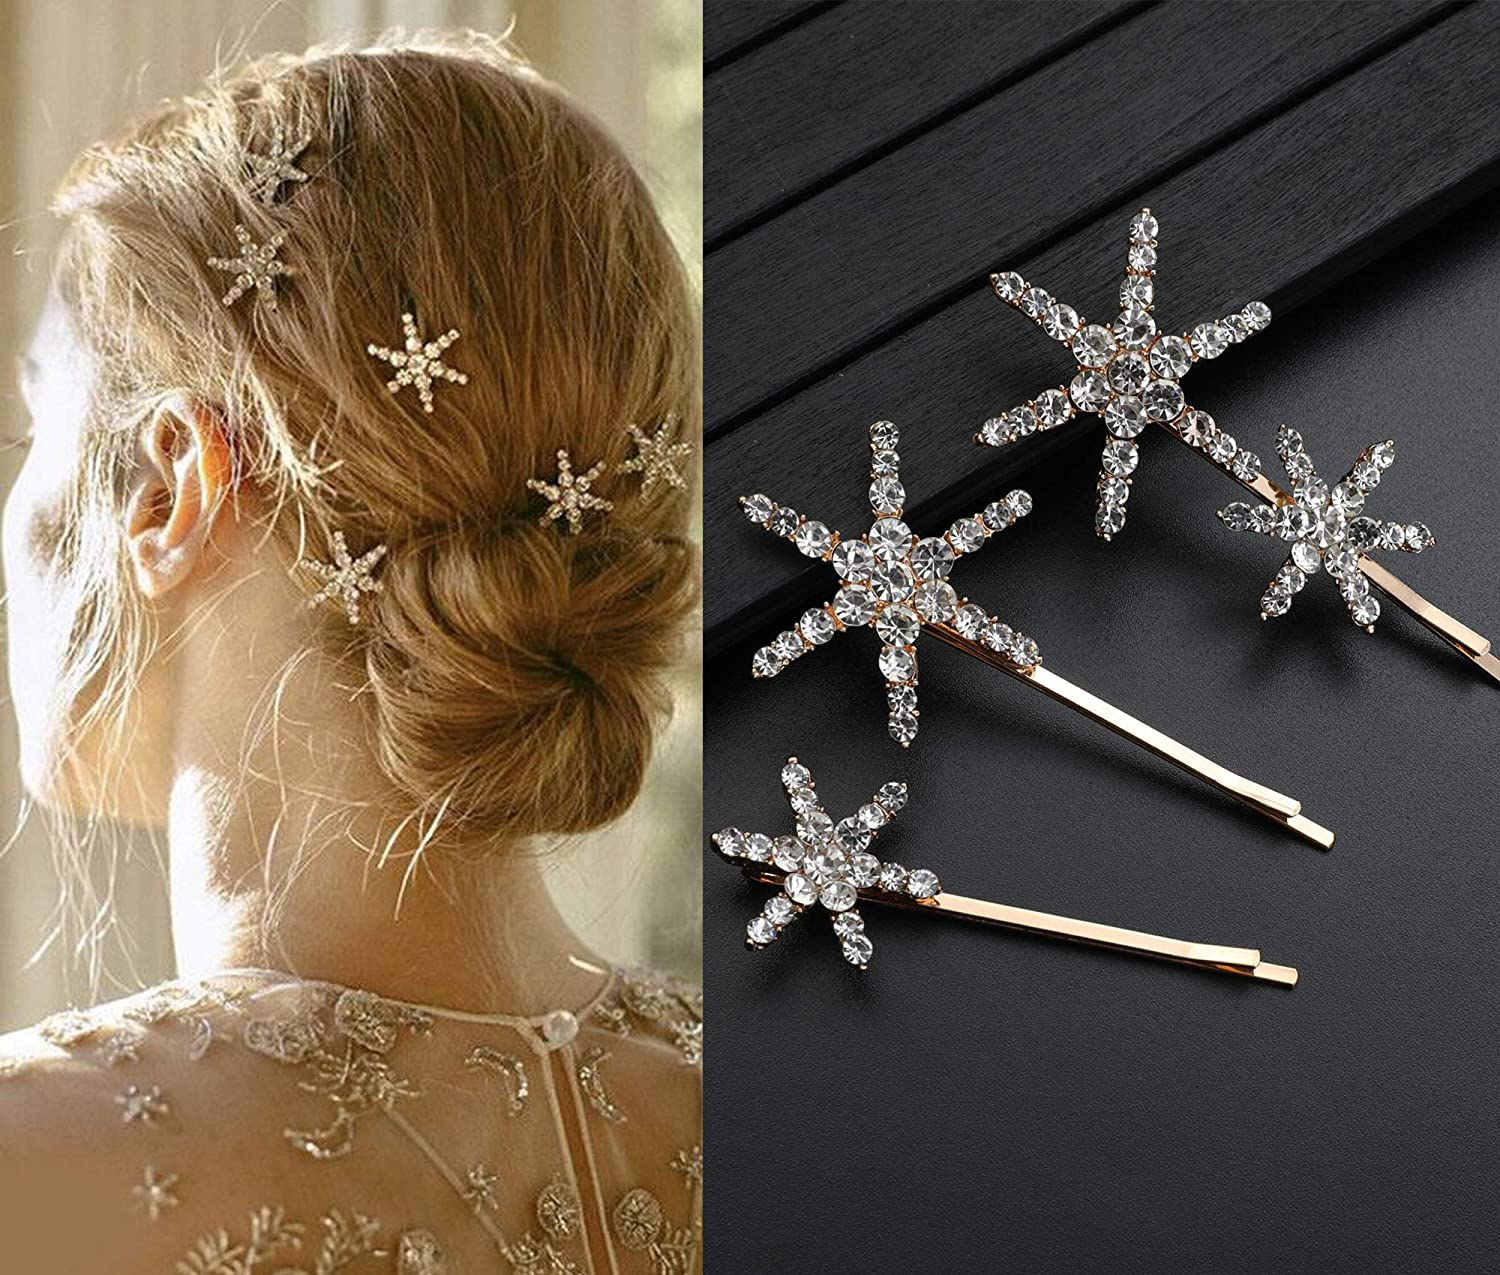 Pearl Hair Jewelry Wedding Hair Pins Gift for Teen Girls and Women Prom Jewelry Gray Pearl Beach Set of Pins Crystal Bobby Pins